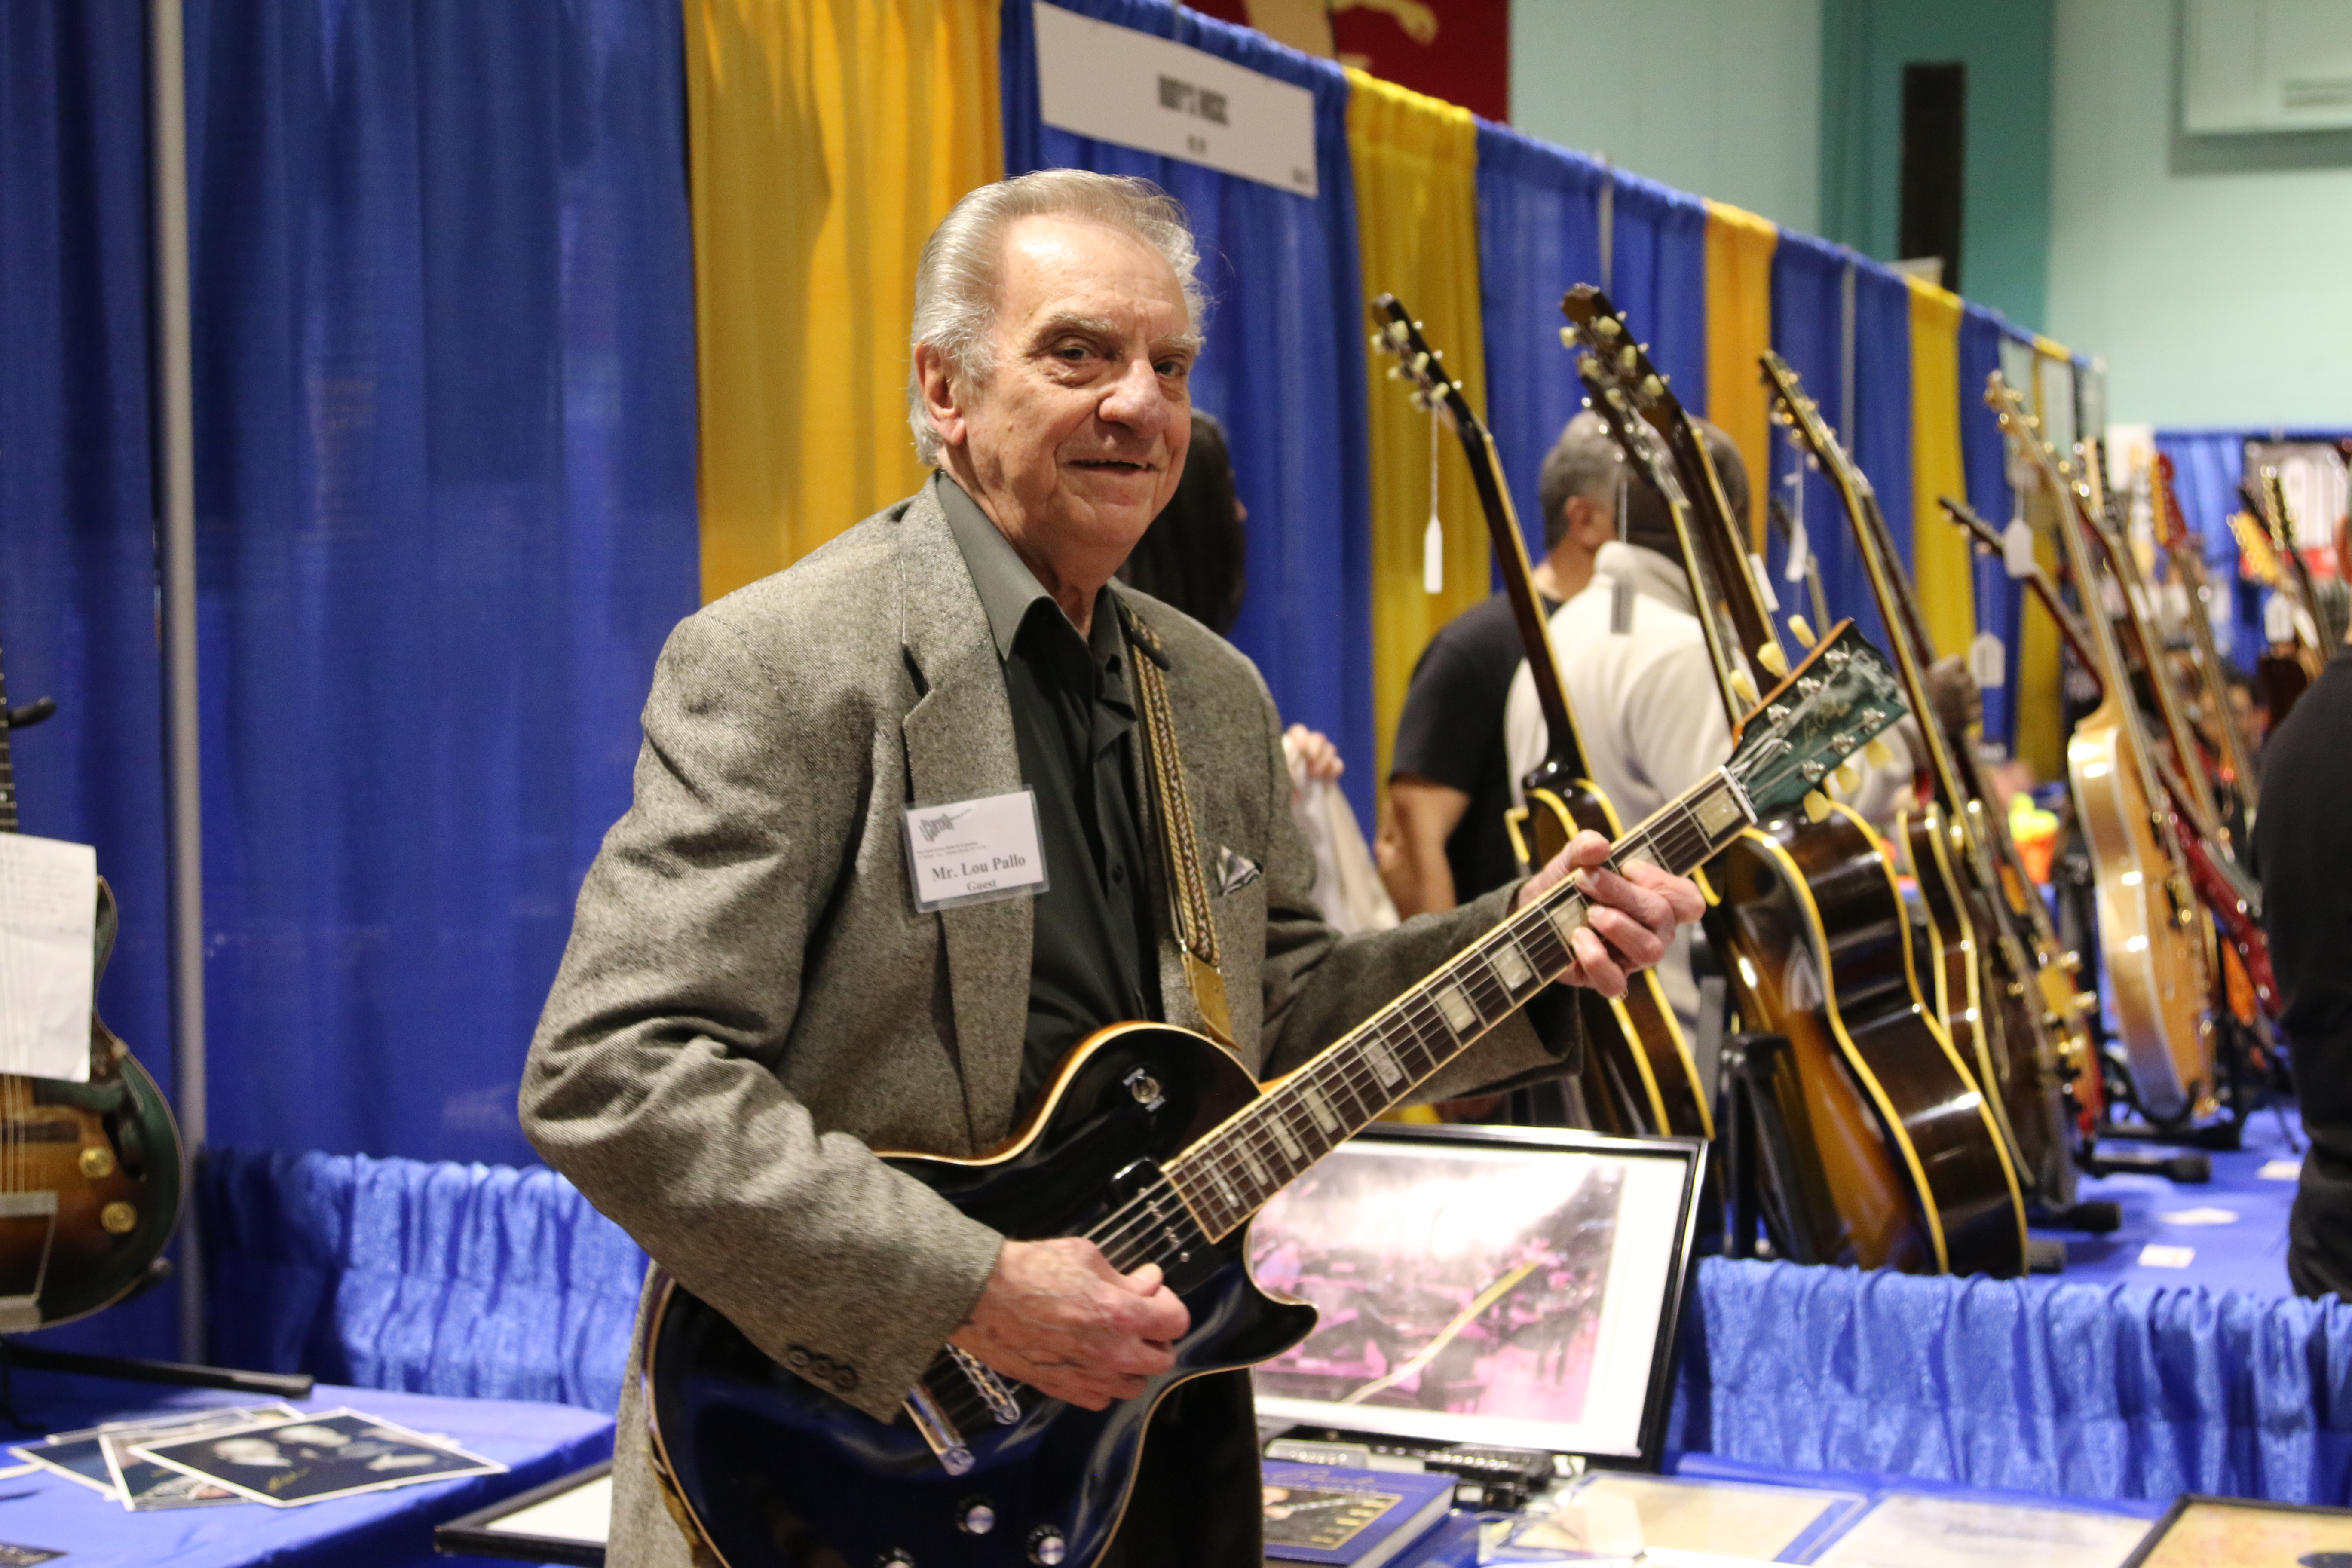 Lou Pallo at NY Guitar Expo.